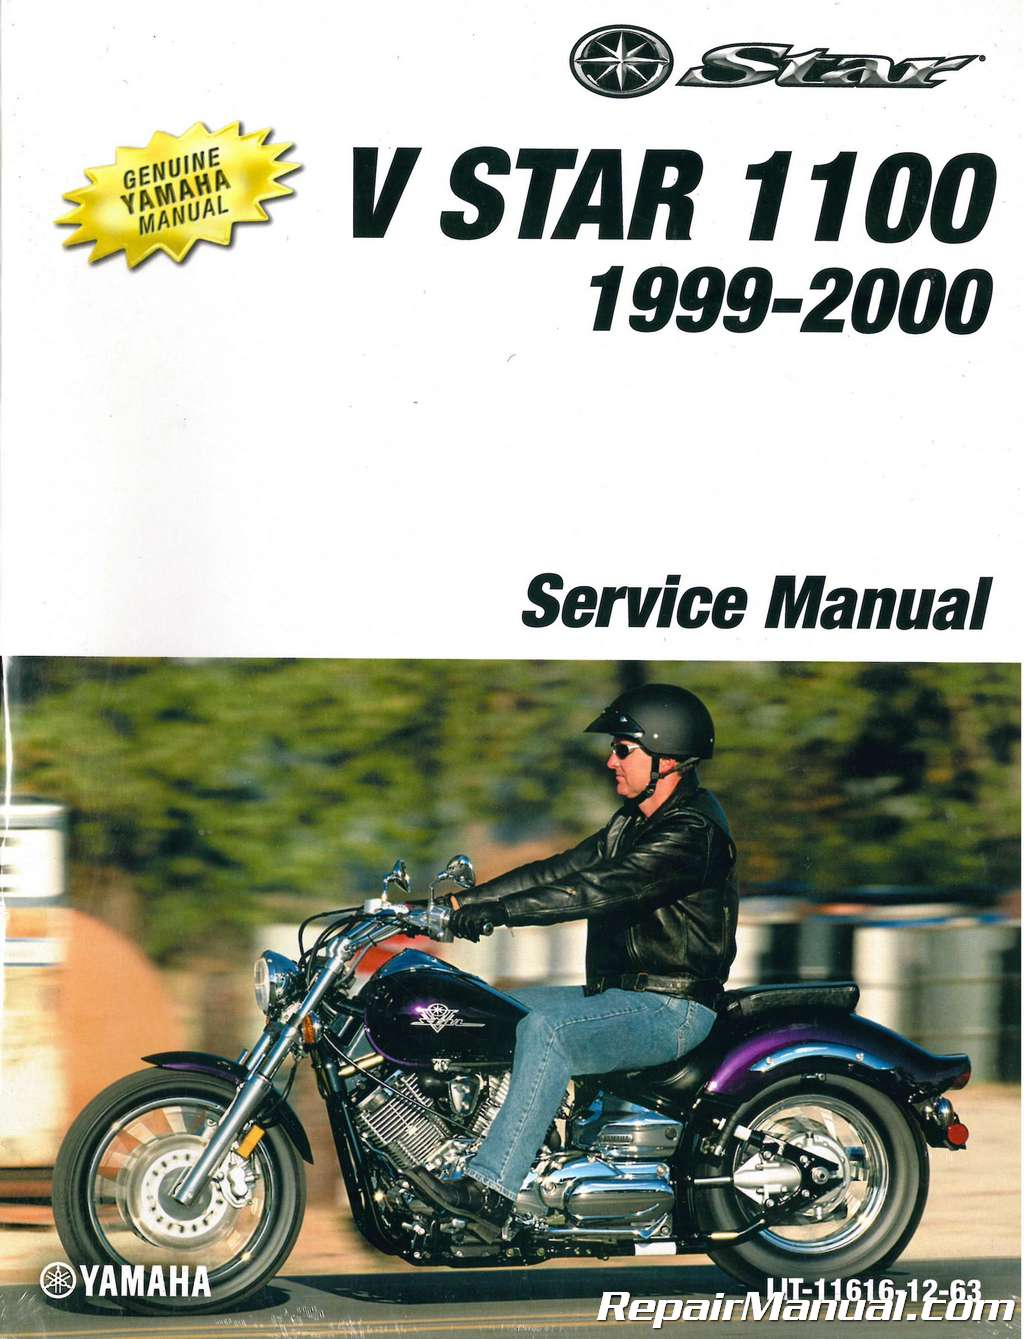 1999-2000 Yamaha XVS1100L LC V-Star 1100 Service Manual